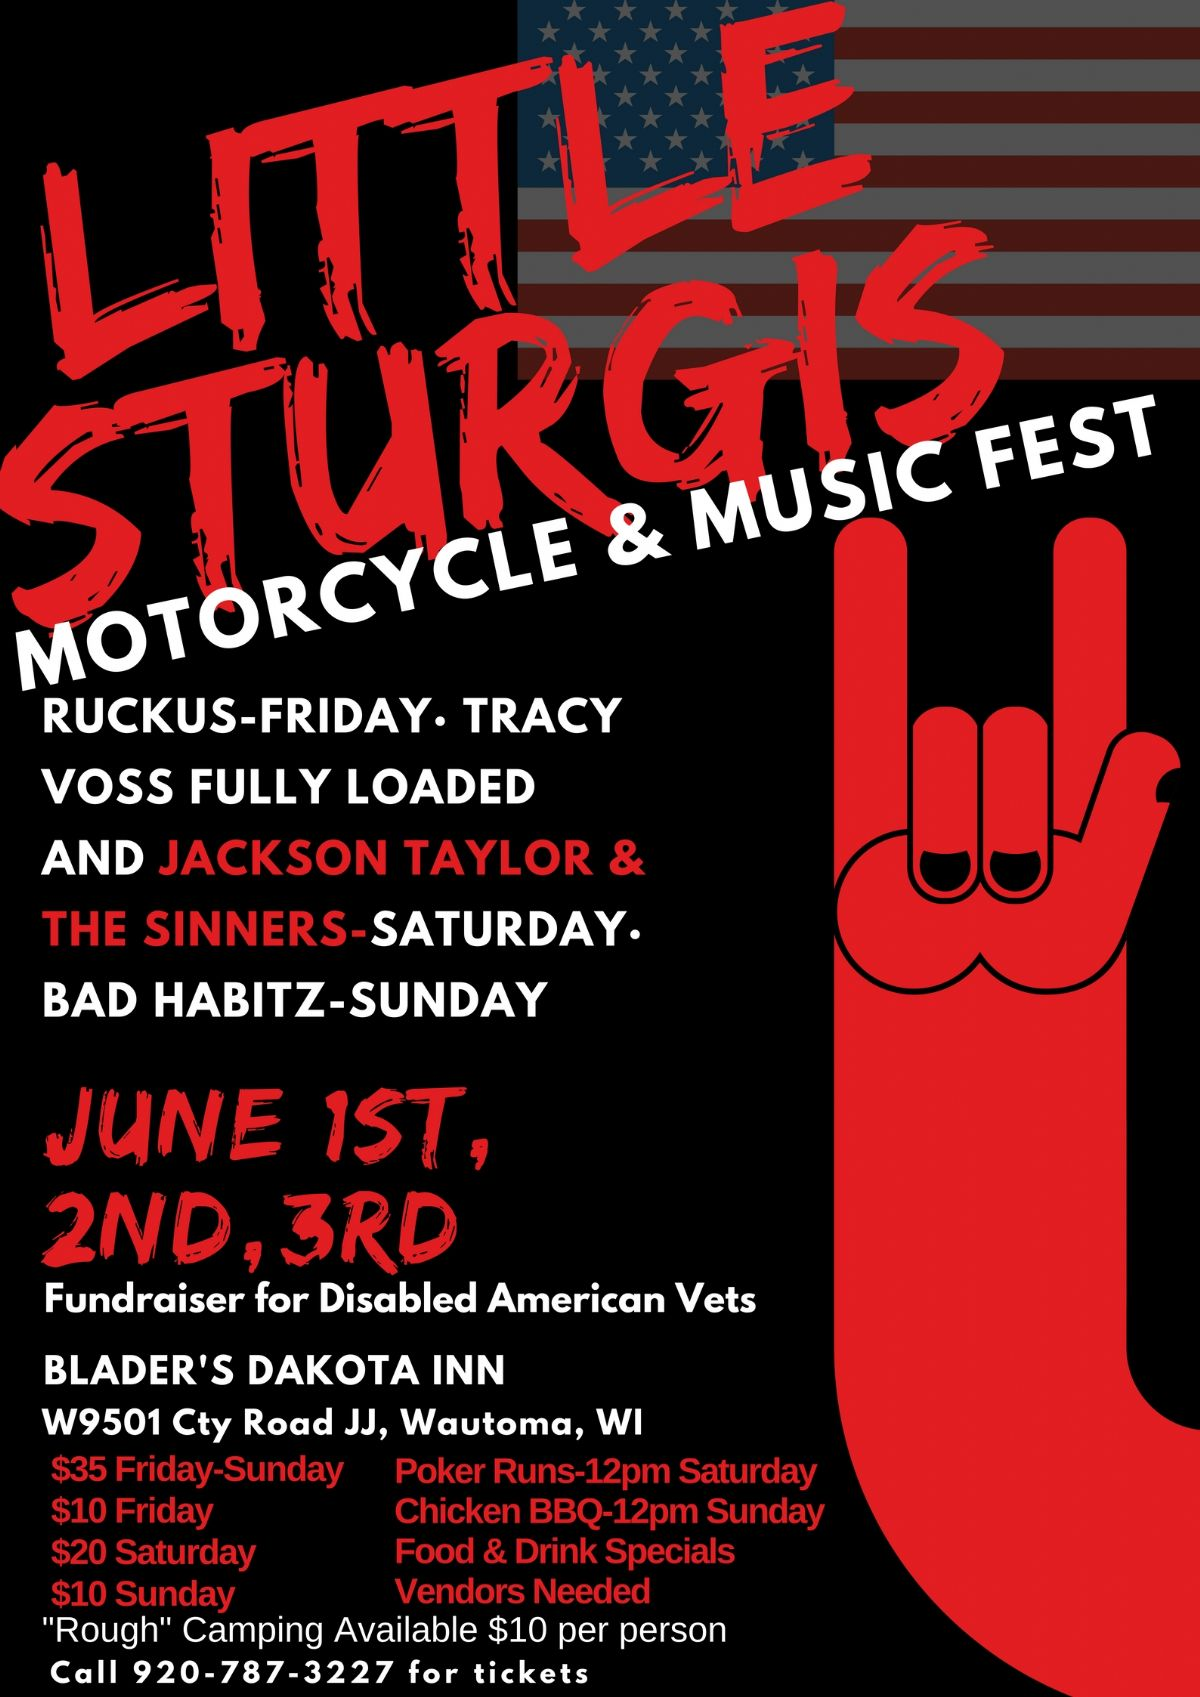 Little Sturgis Motorcycle & Music Fest